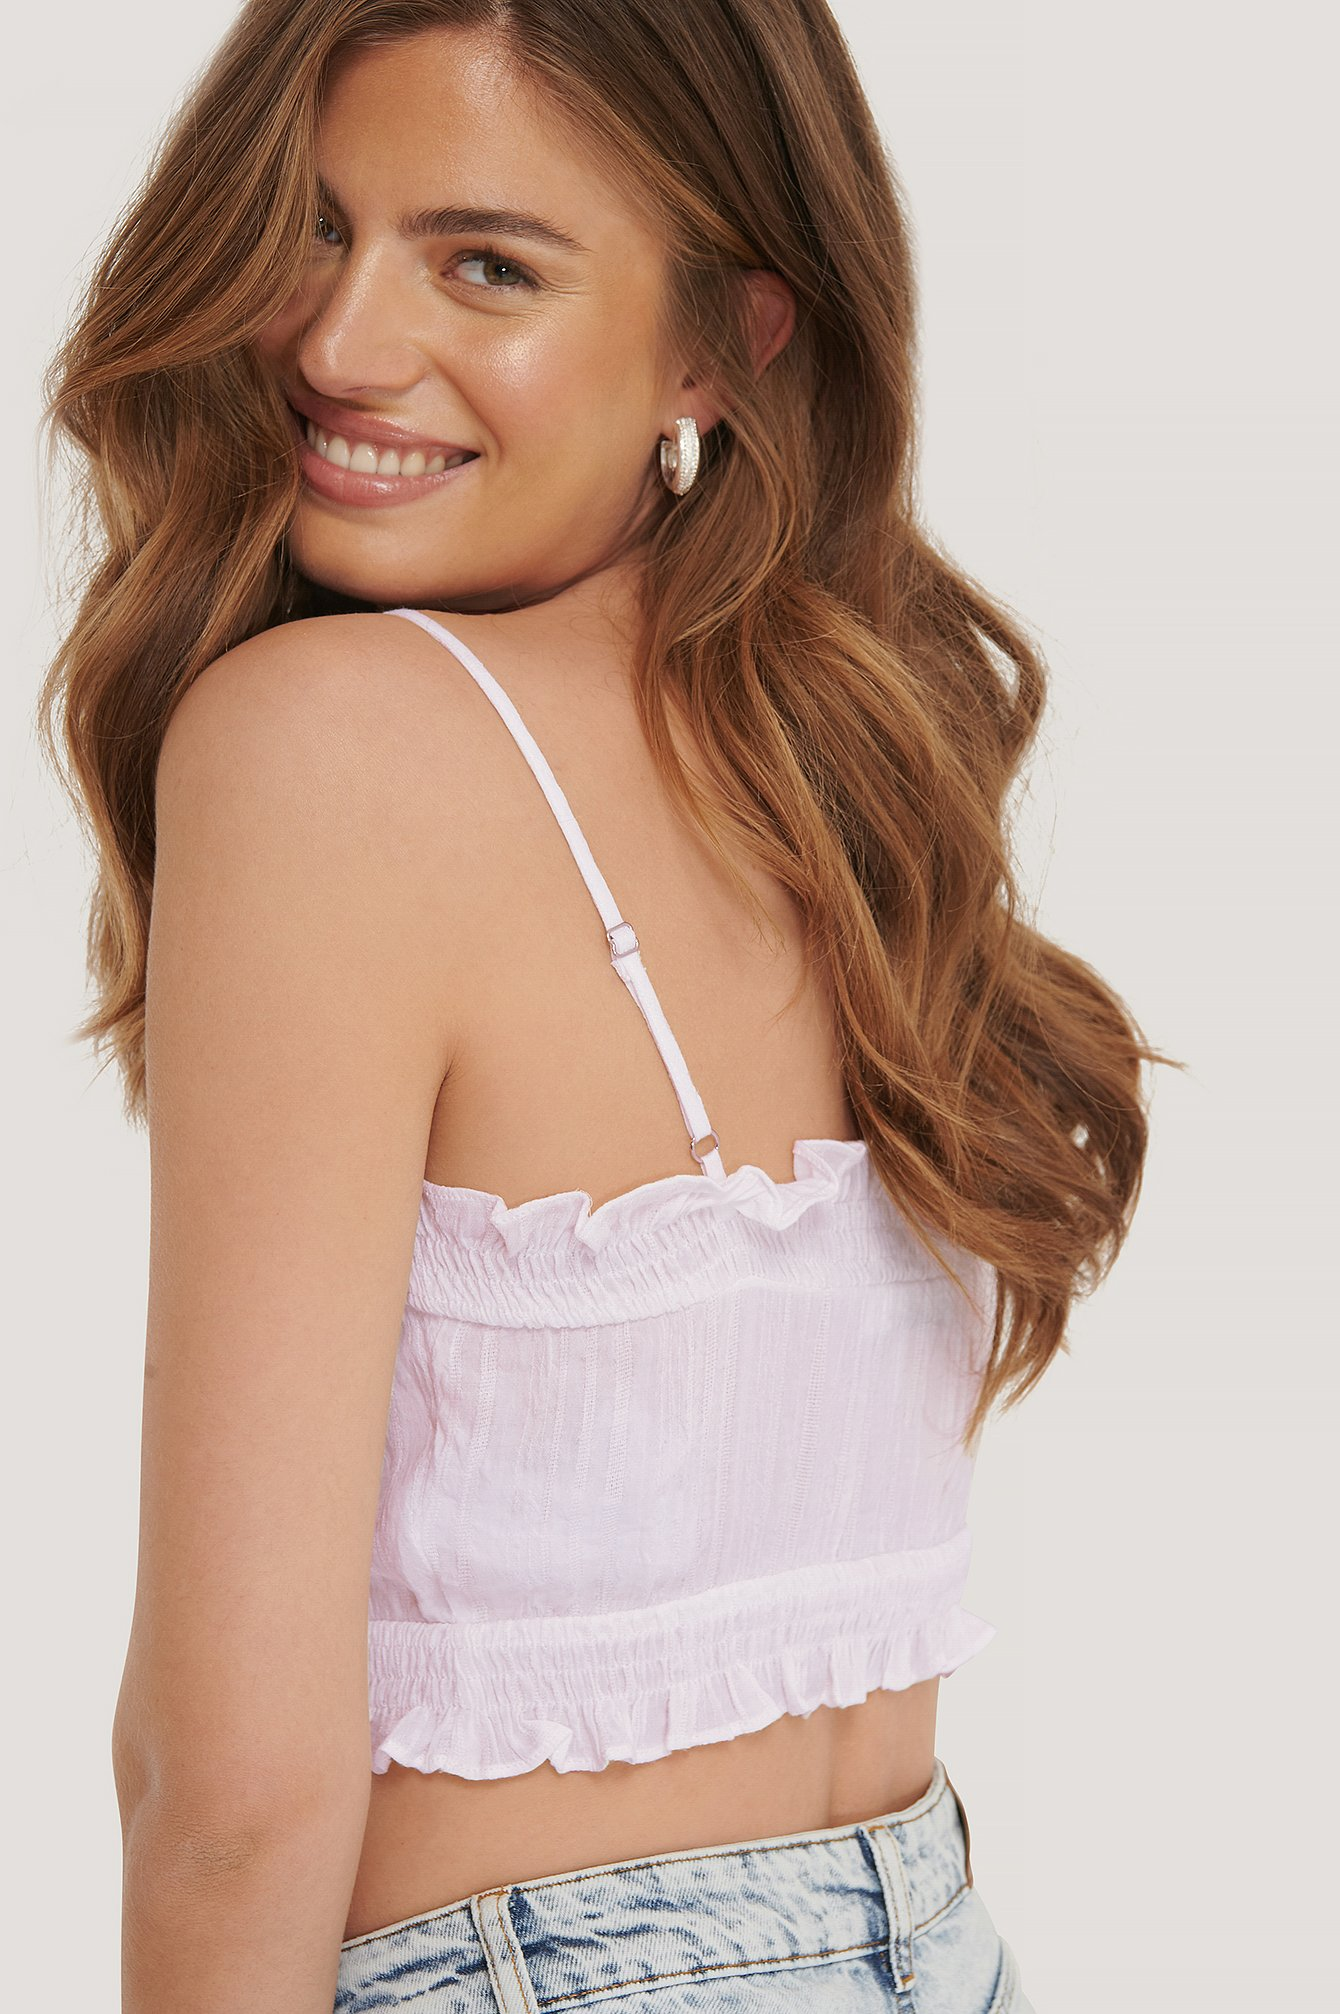 White Kurzes Top Mit Smock-Detail